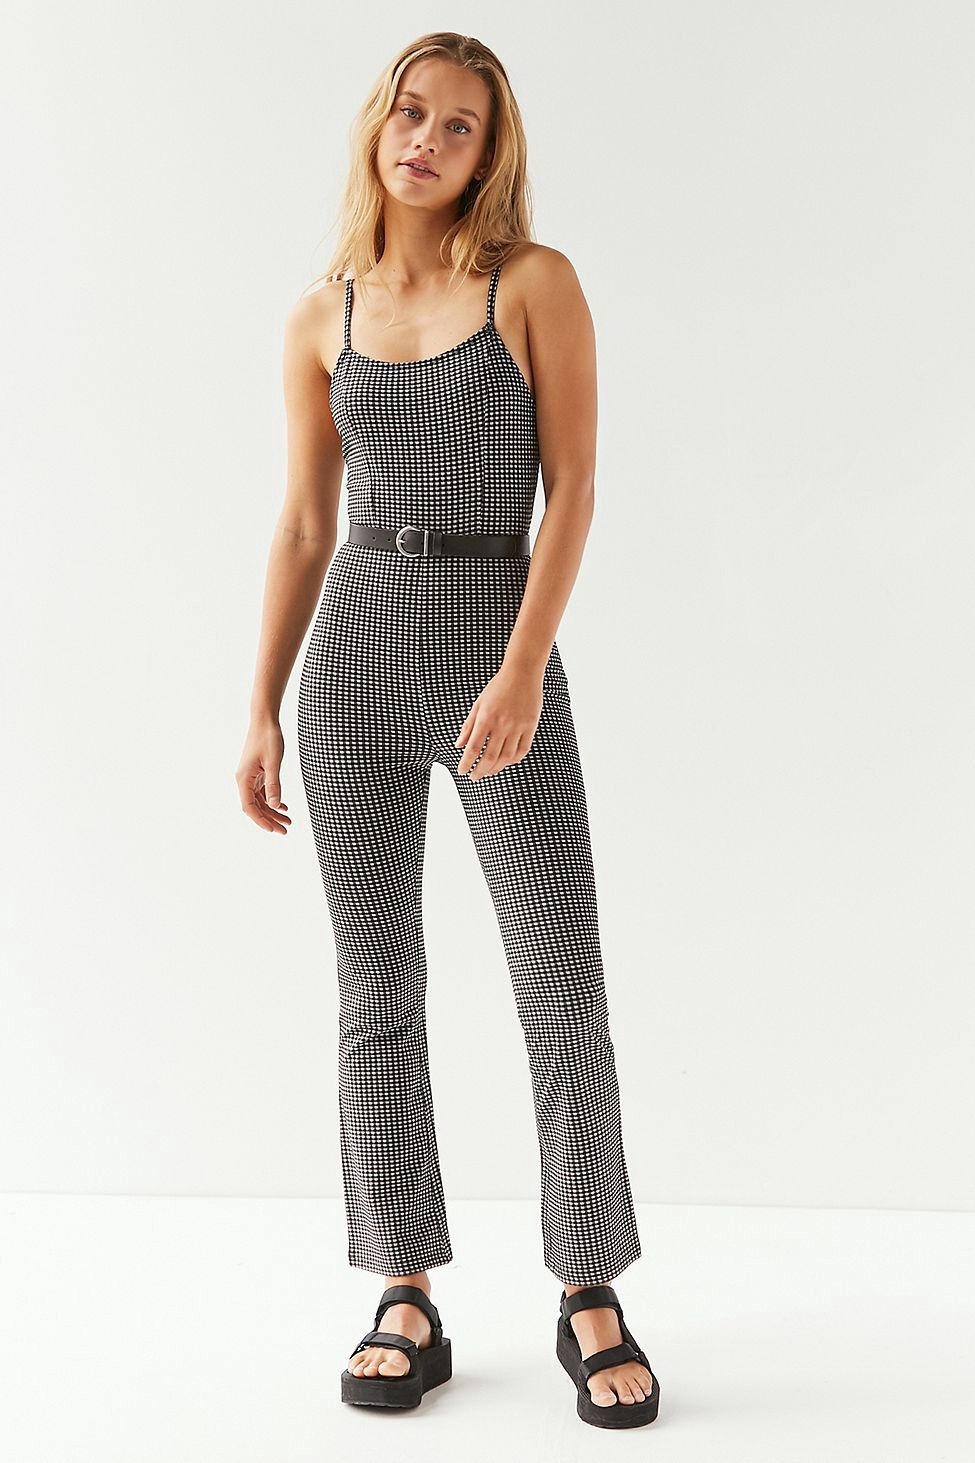 068d24062ca Urban Outfitters Uo Harlyn Bodycon Gingham Jumpsuit - Black + White ...